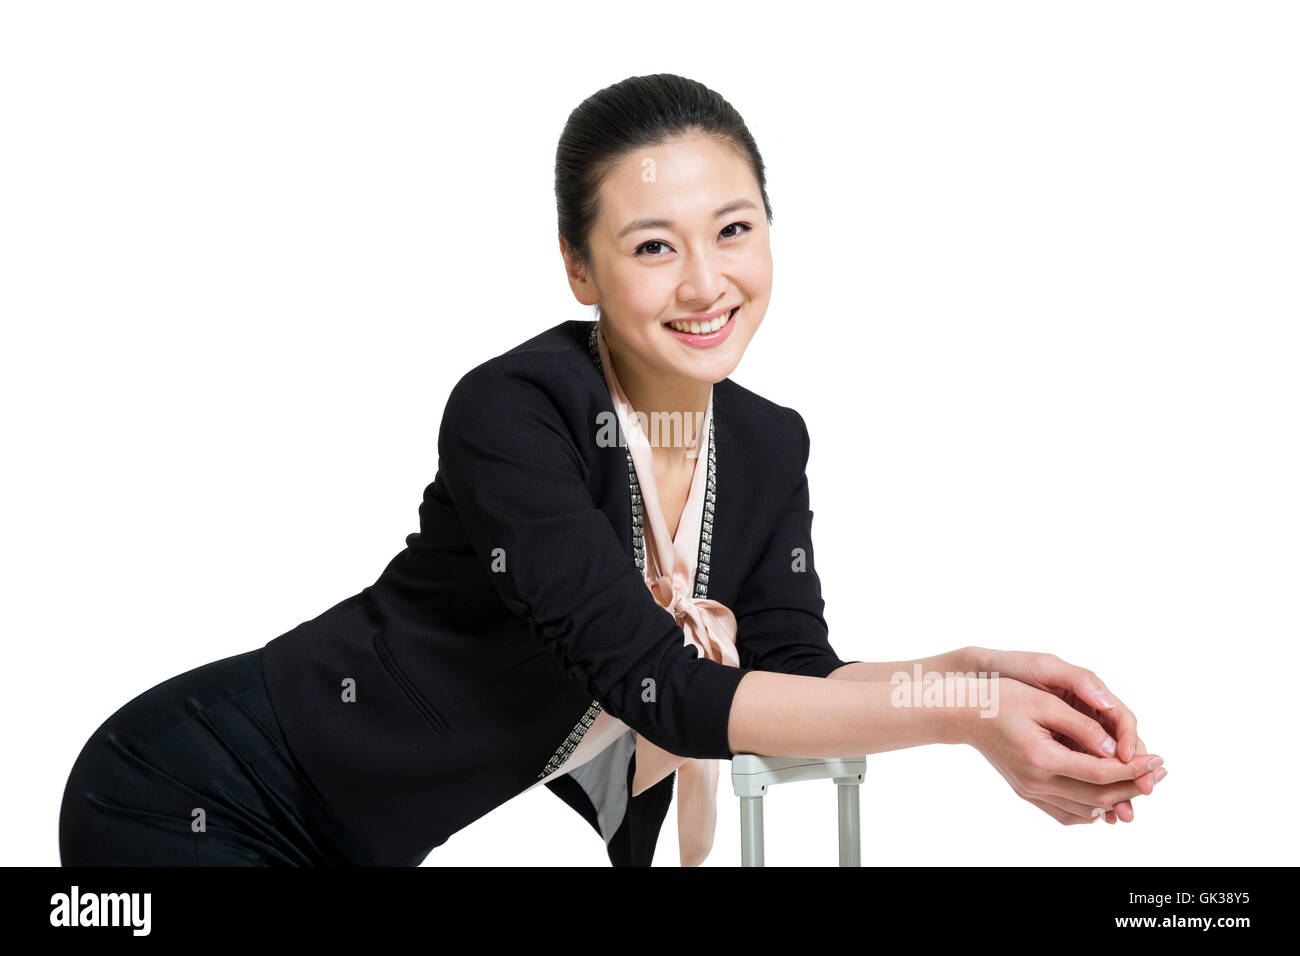 Ms. studio shot Business Travel - Stock Image